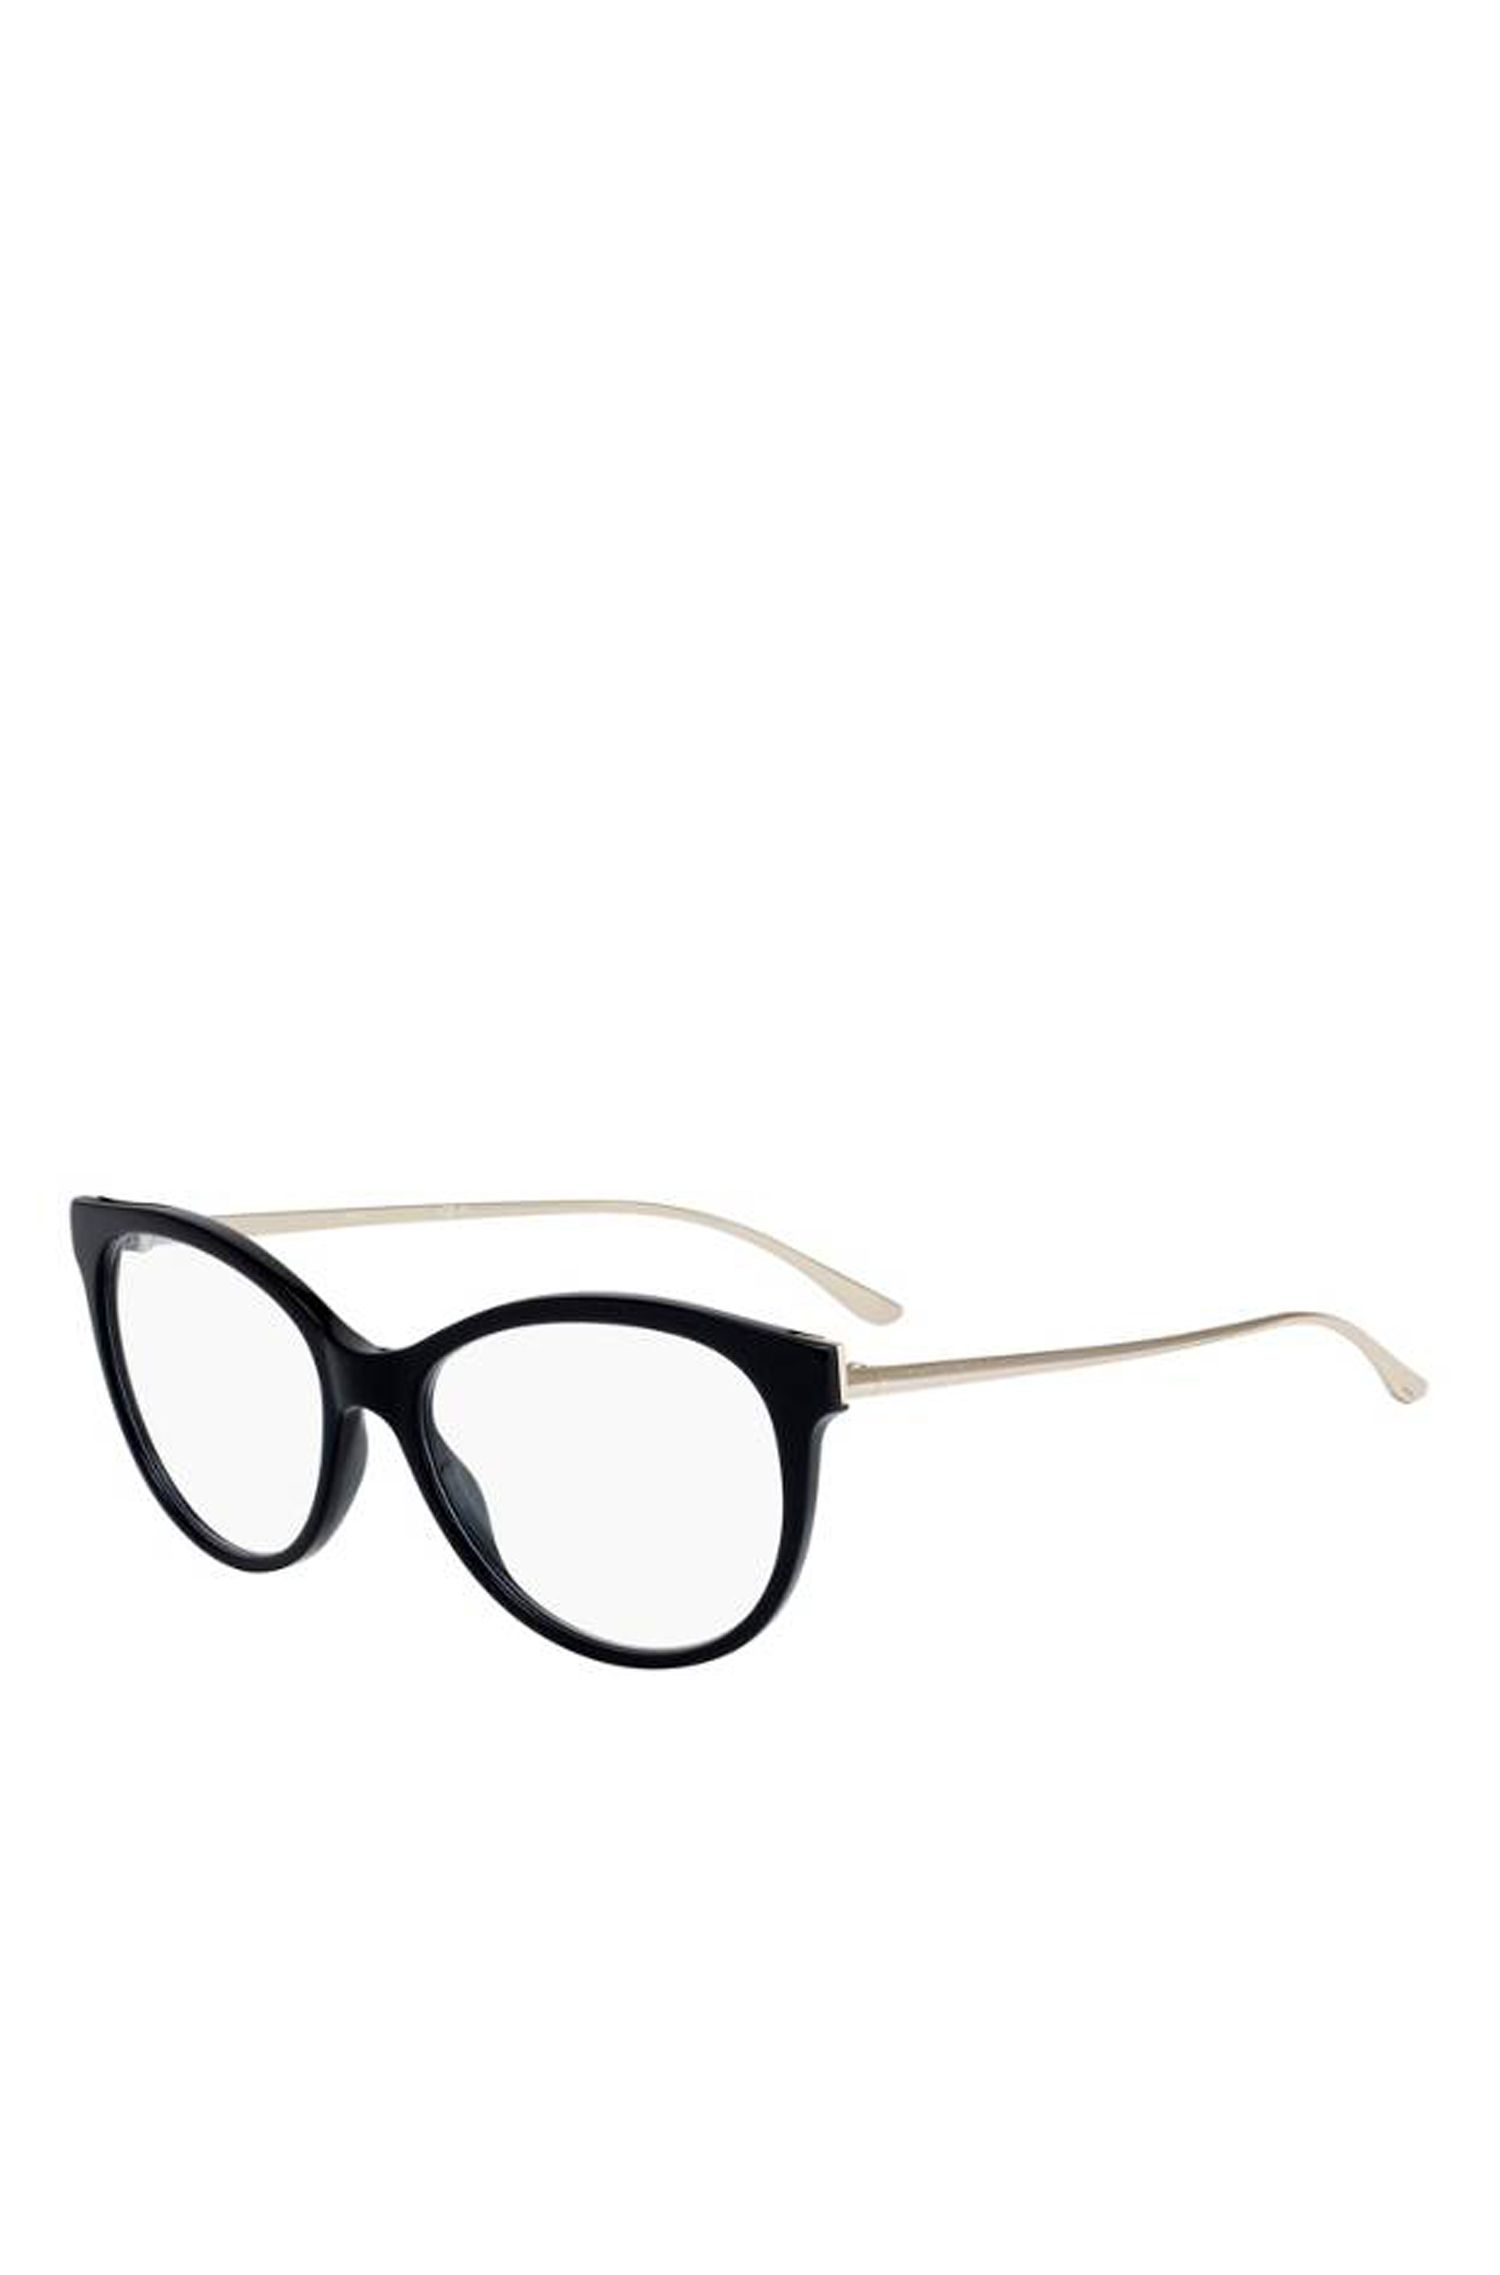 'BOSS 0894 RHP' | Black Acetate Cat-Eye Optical Frames